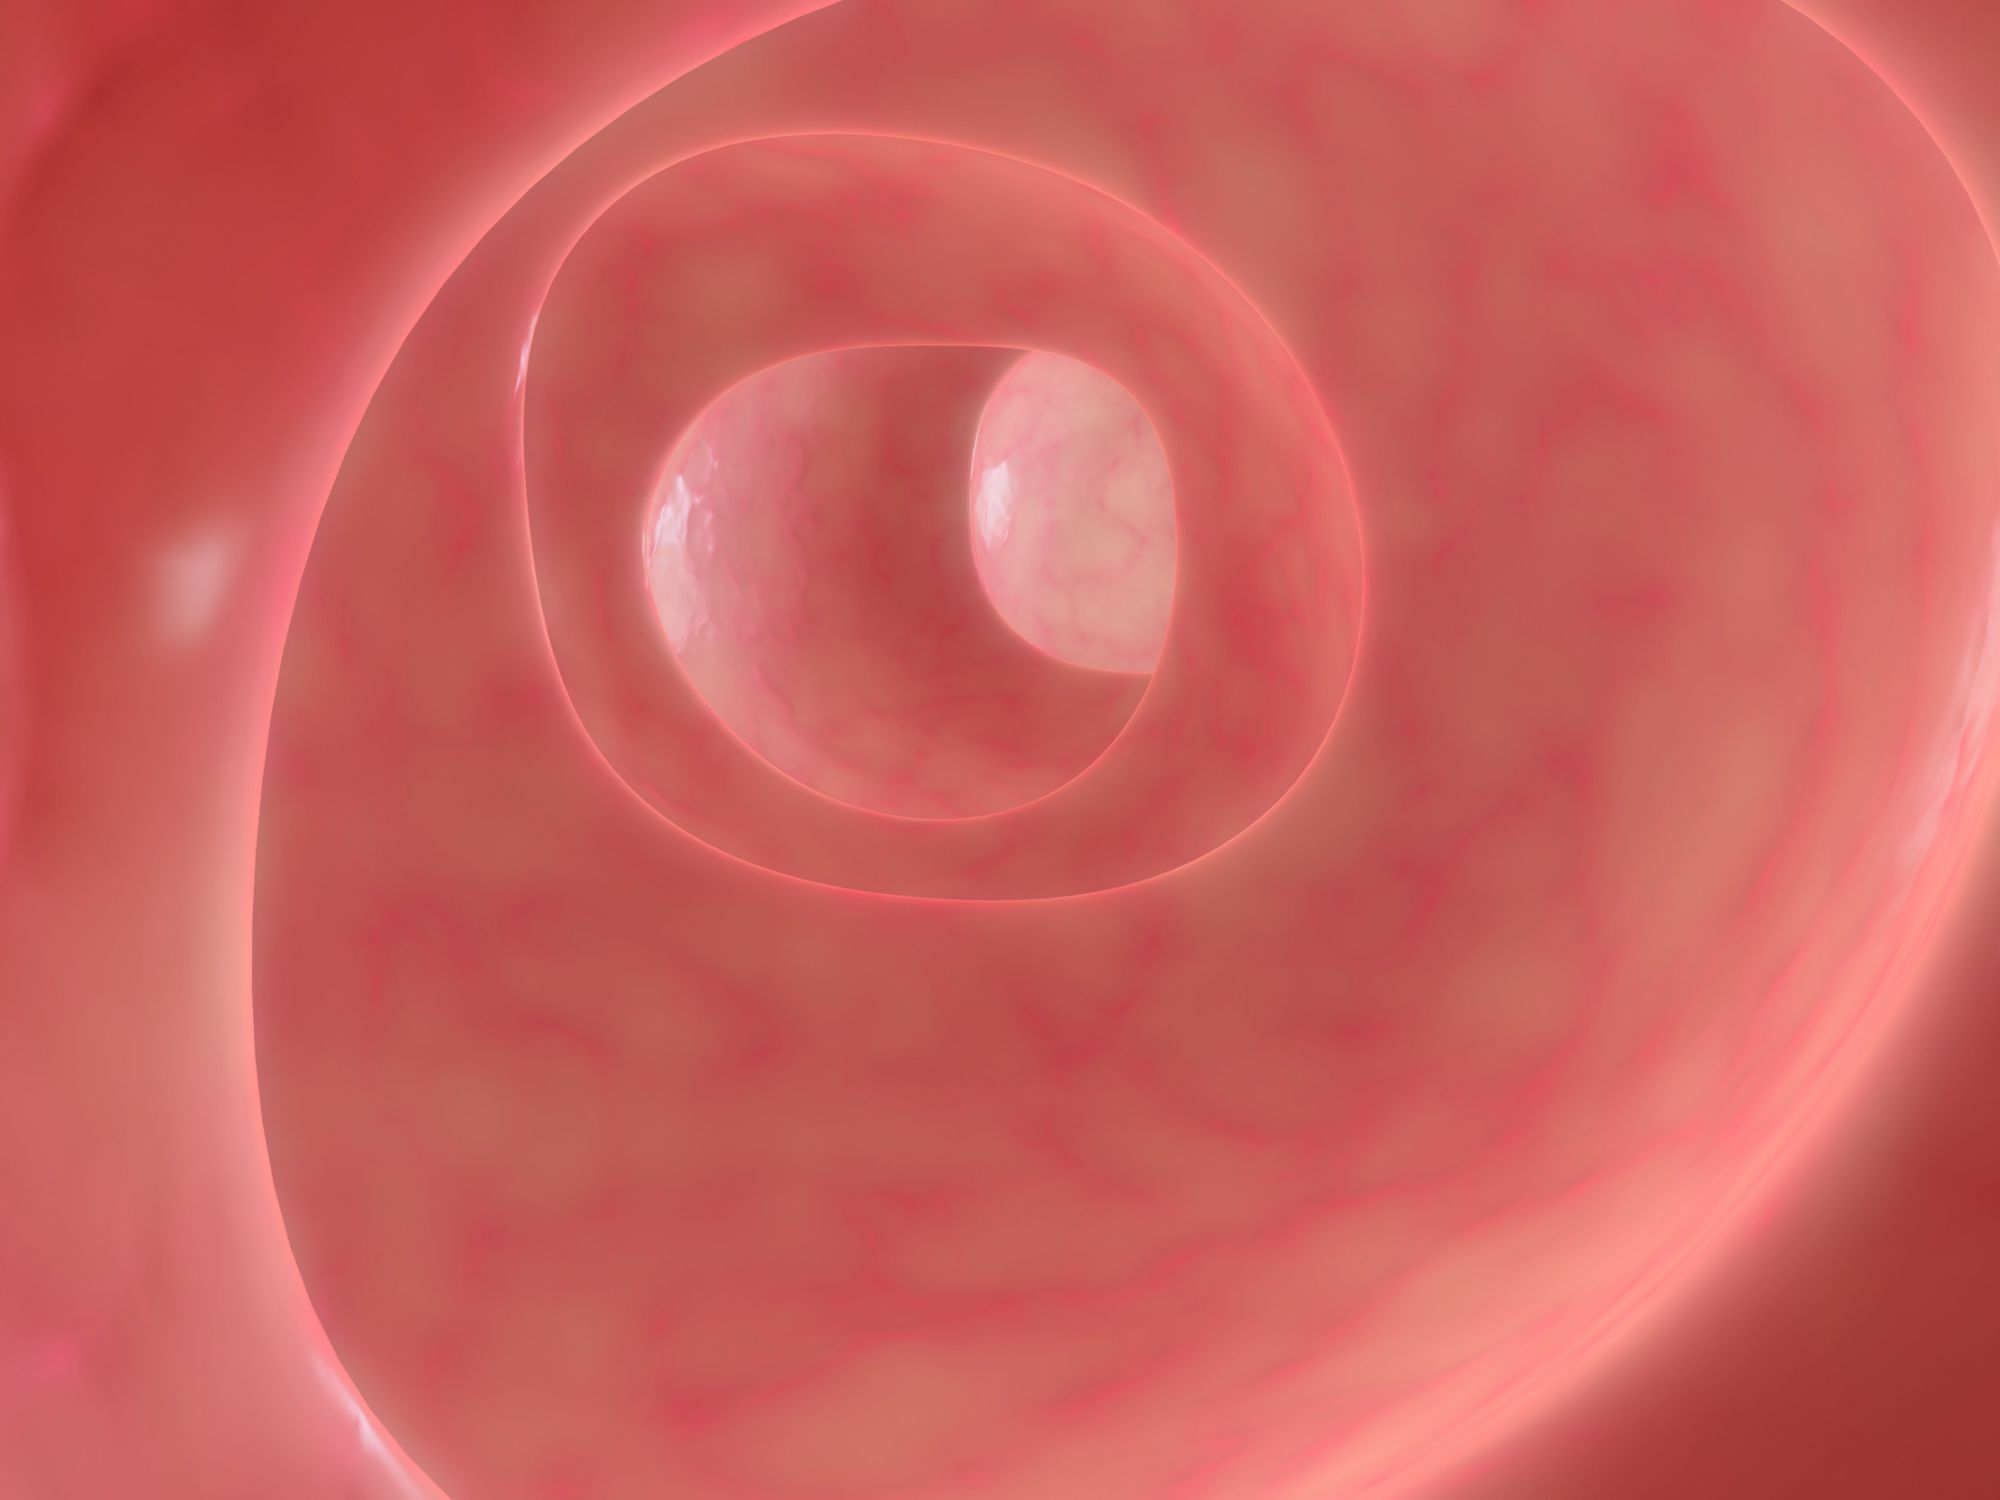 Colonoscopy involves the colon. © Sebastian Kaulitzki, Fotolia